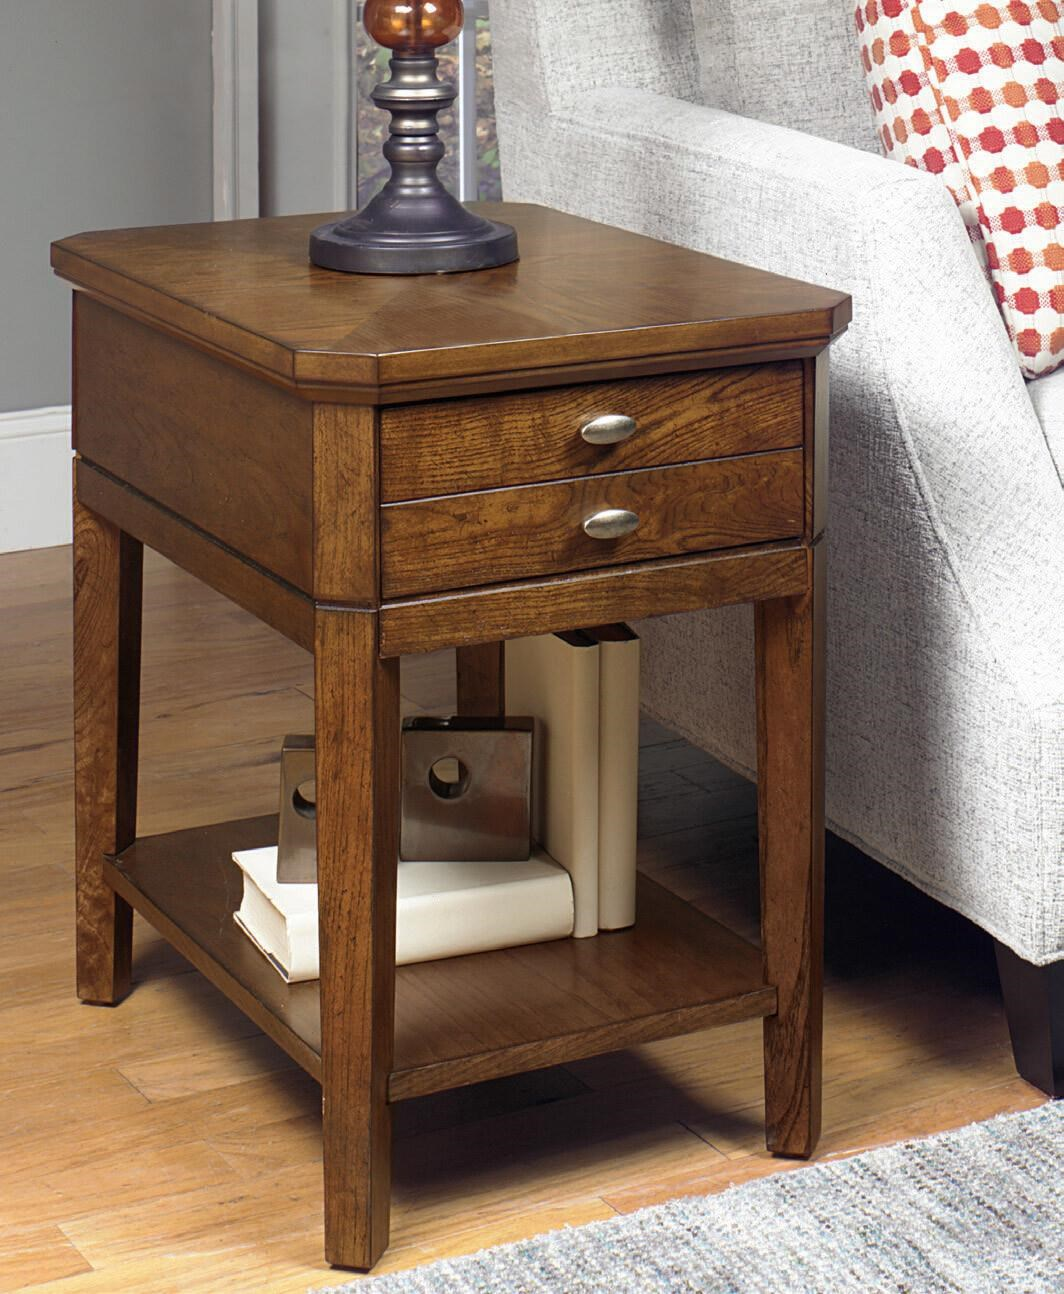 2016 Collection End Table by Null Furniture at Wayside Furniture